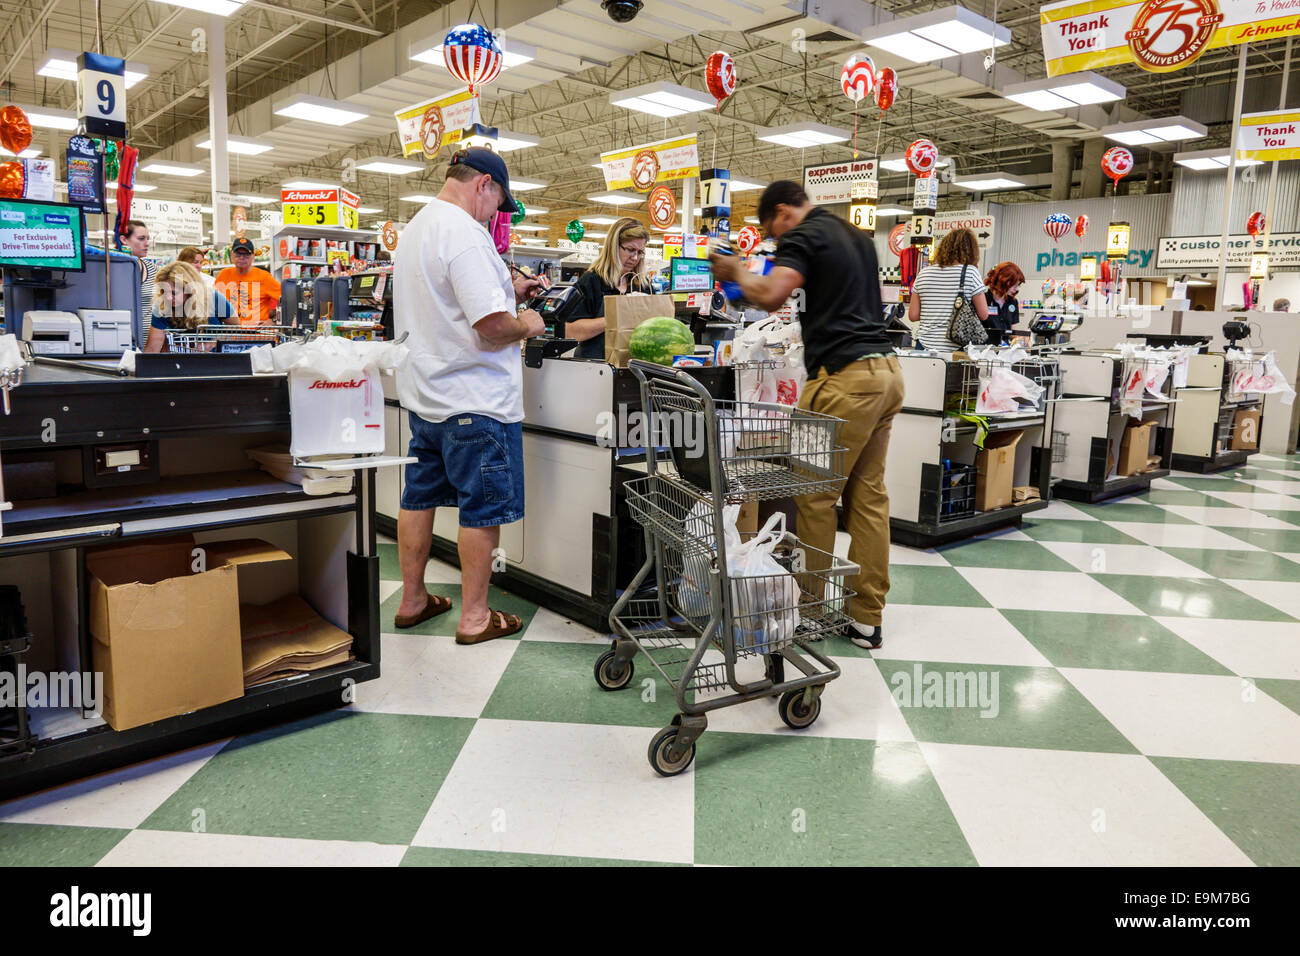 St. Louis Missouri Saint Forest Park Schnucks grocery store supermarket food sale display shopping line queue check - Stock Image